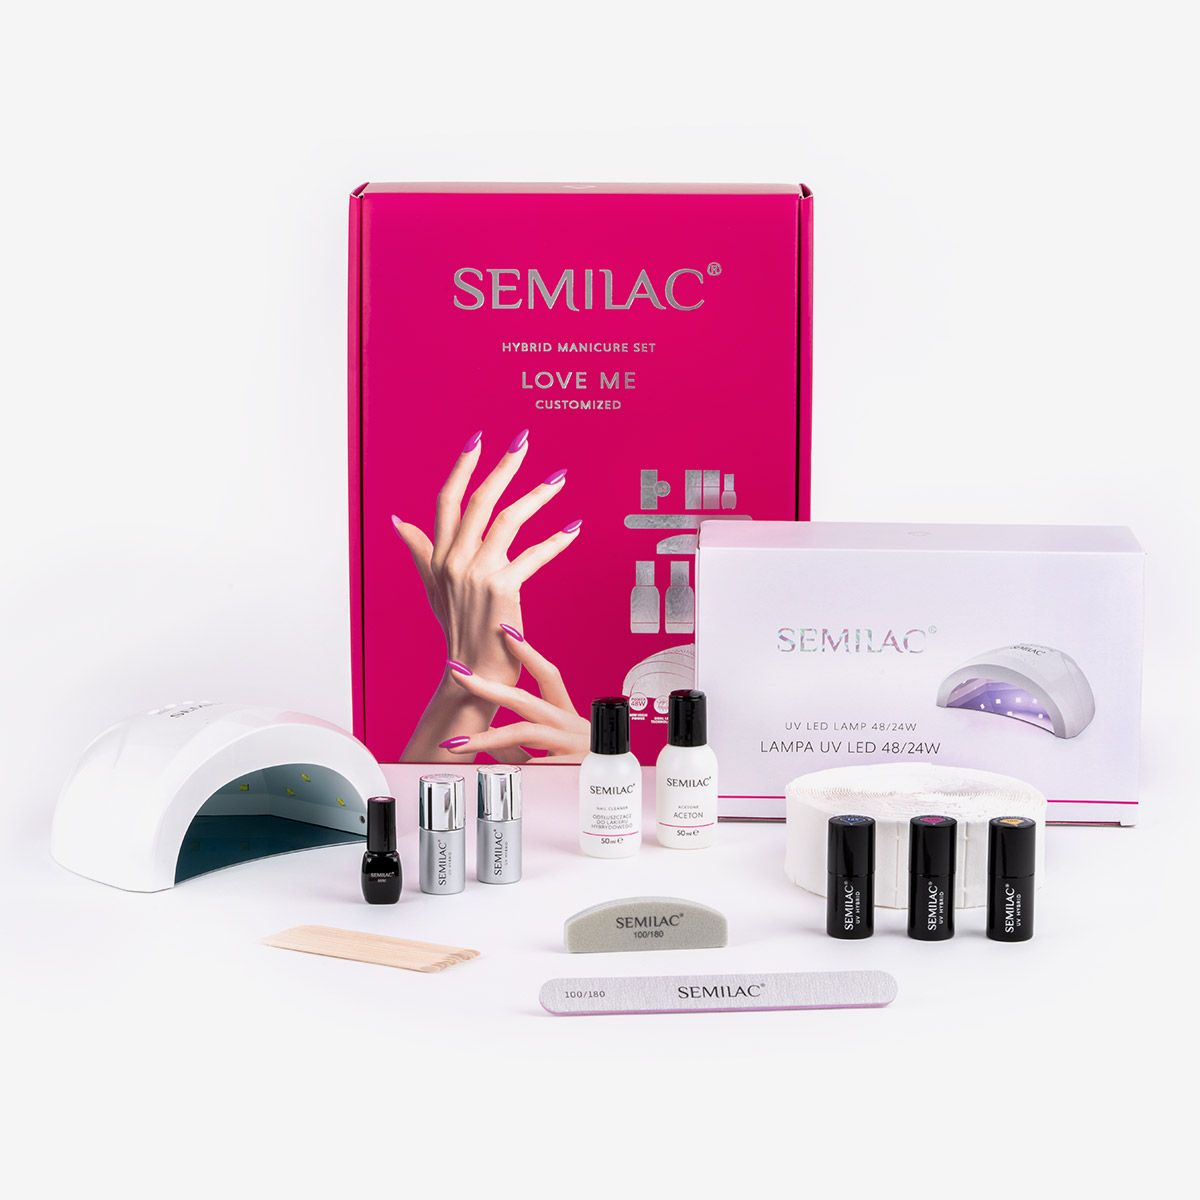 Semilac Starter Set Love me CUSTOMISED with 24/48W Led Lamp